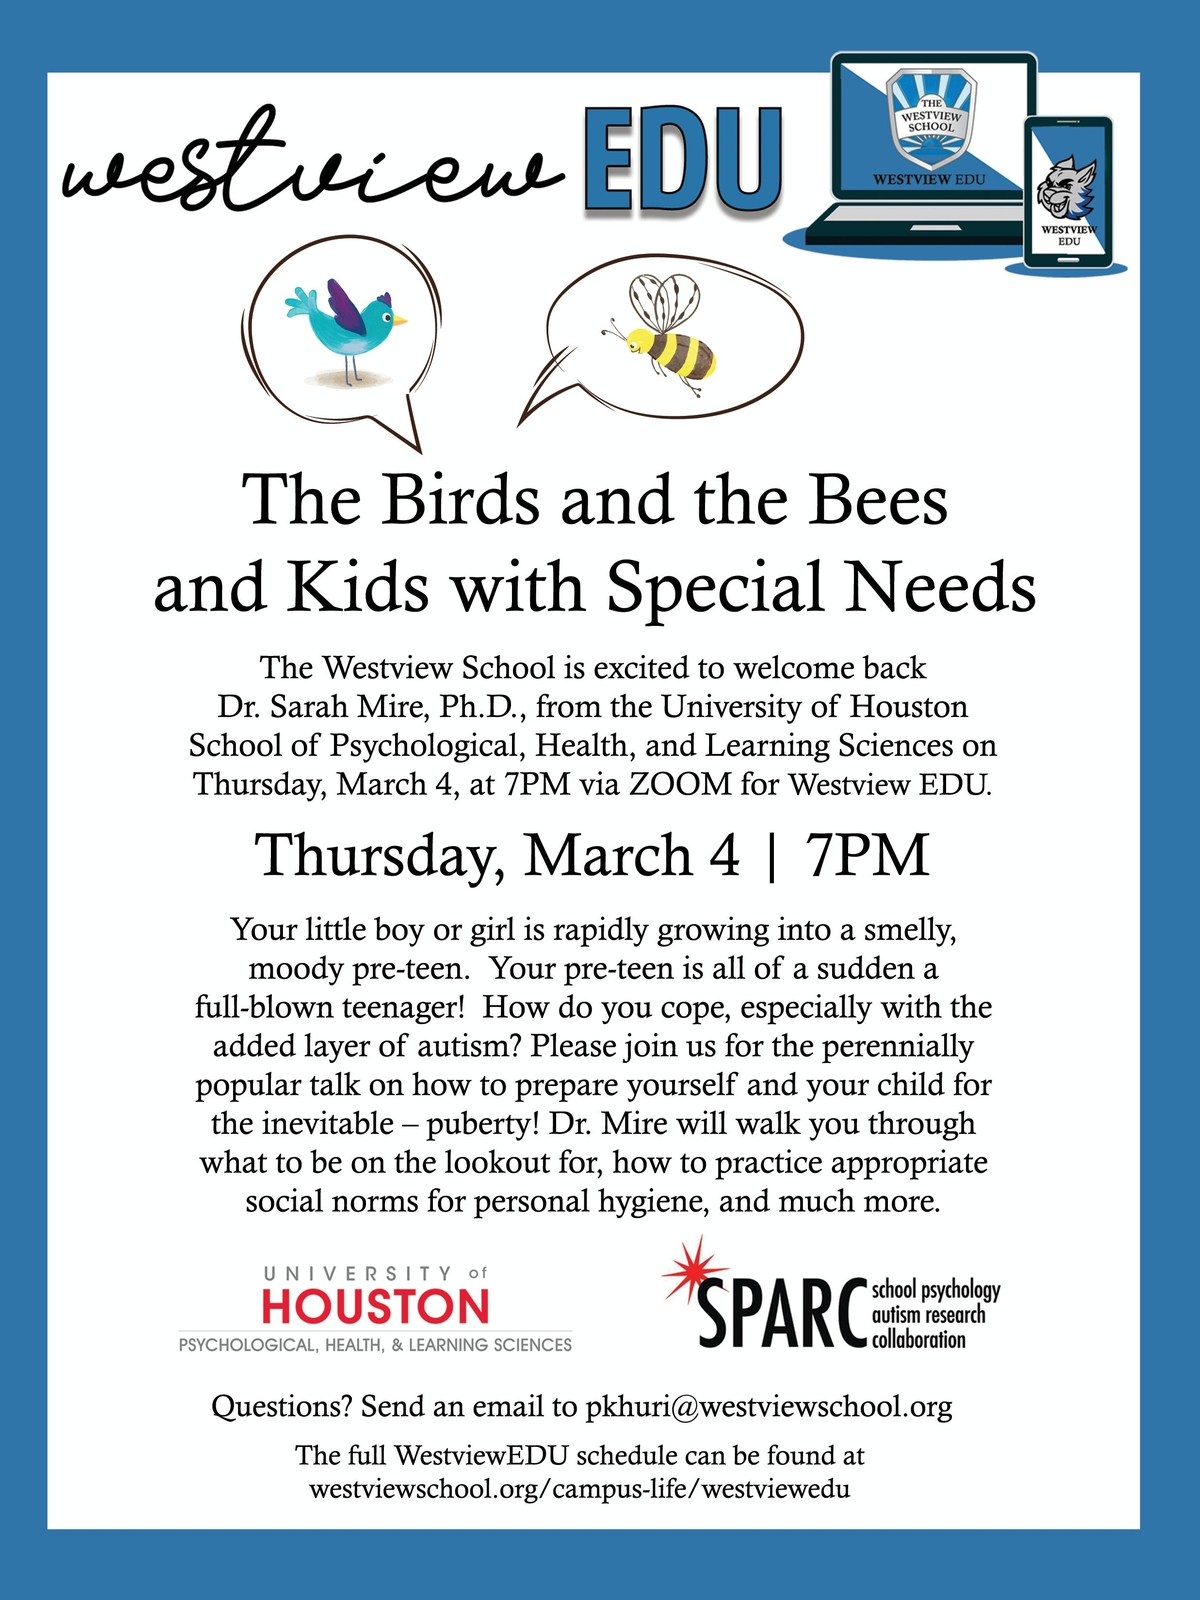 WESTVIEW EDU: The Birds and the Bees and Kids with Special Needs